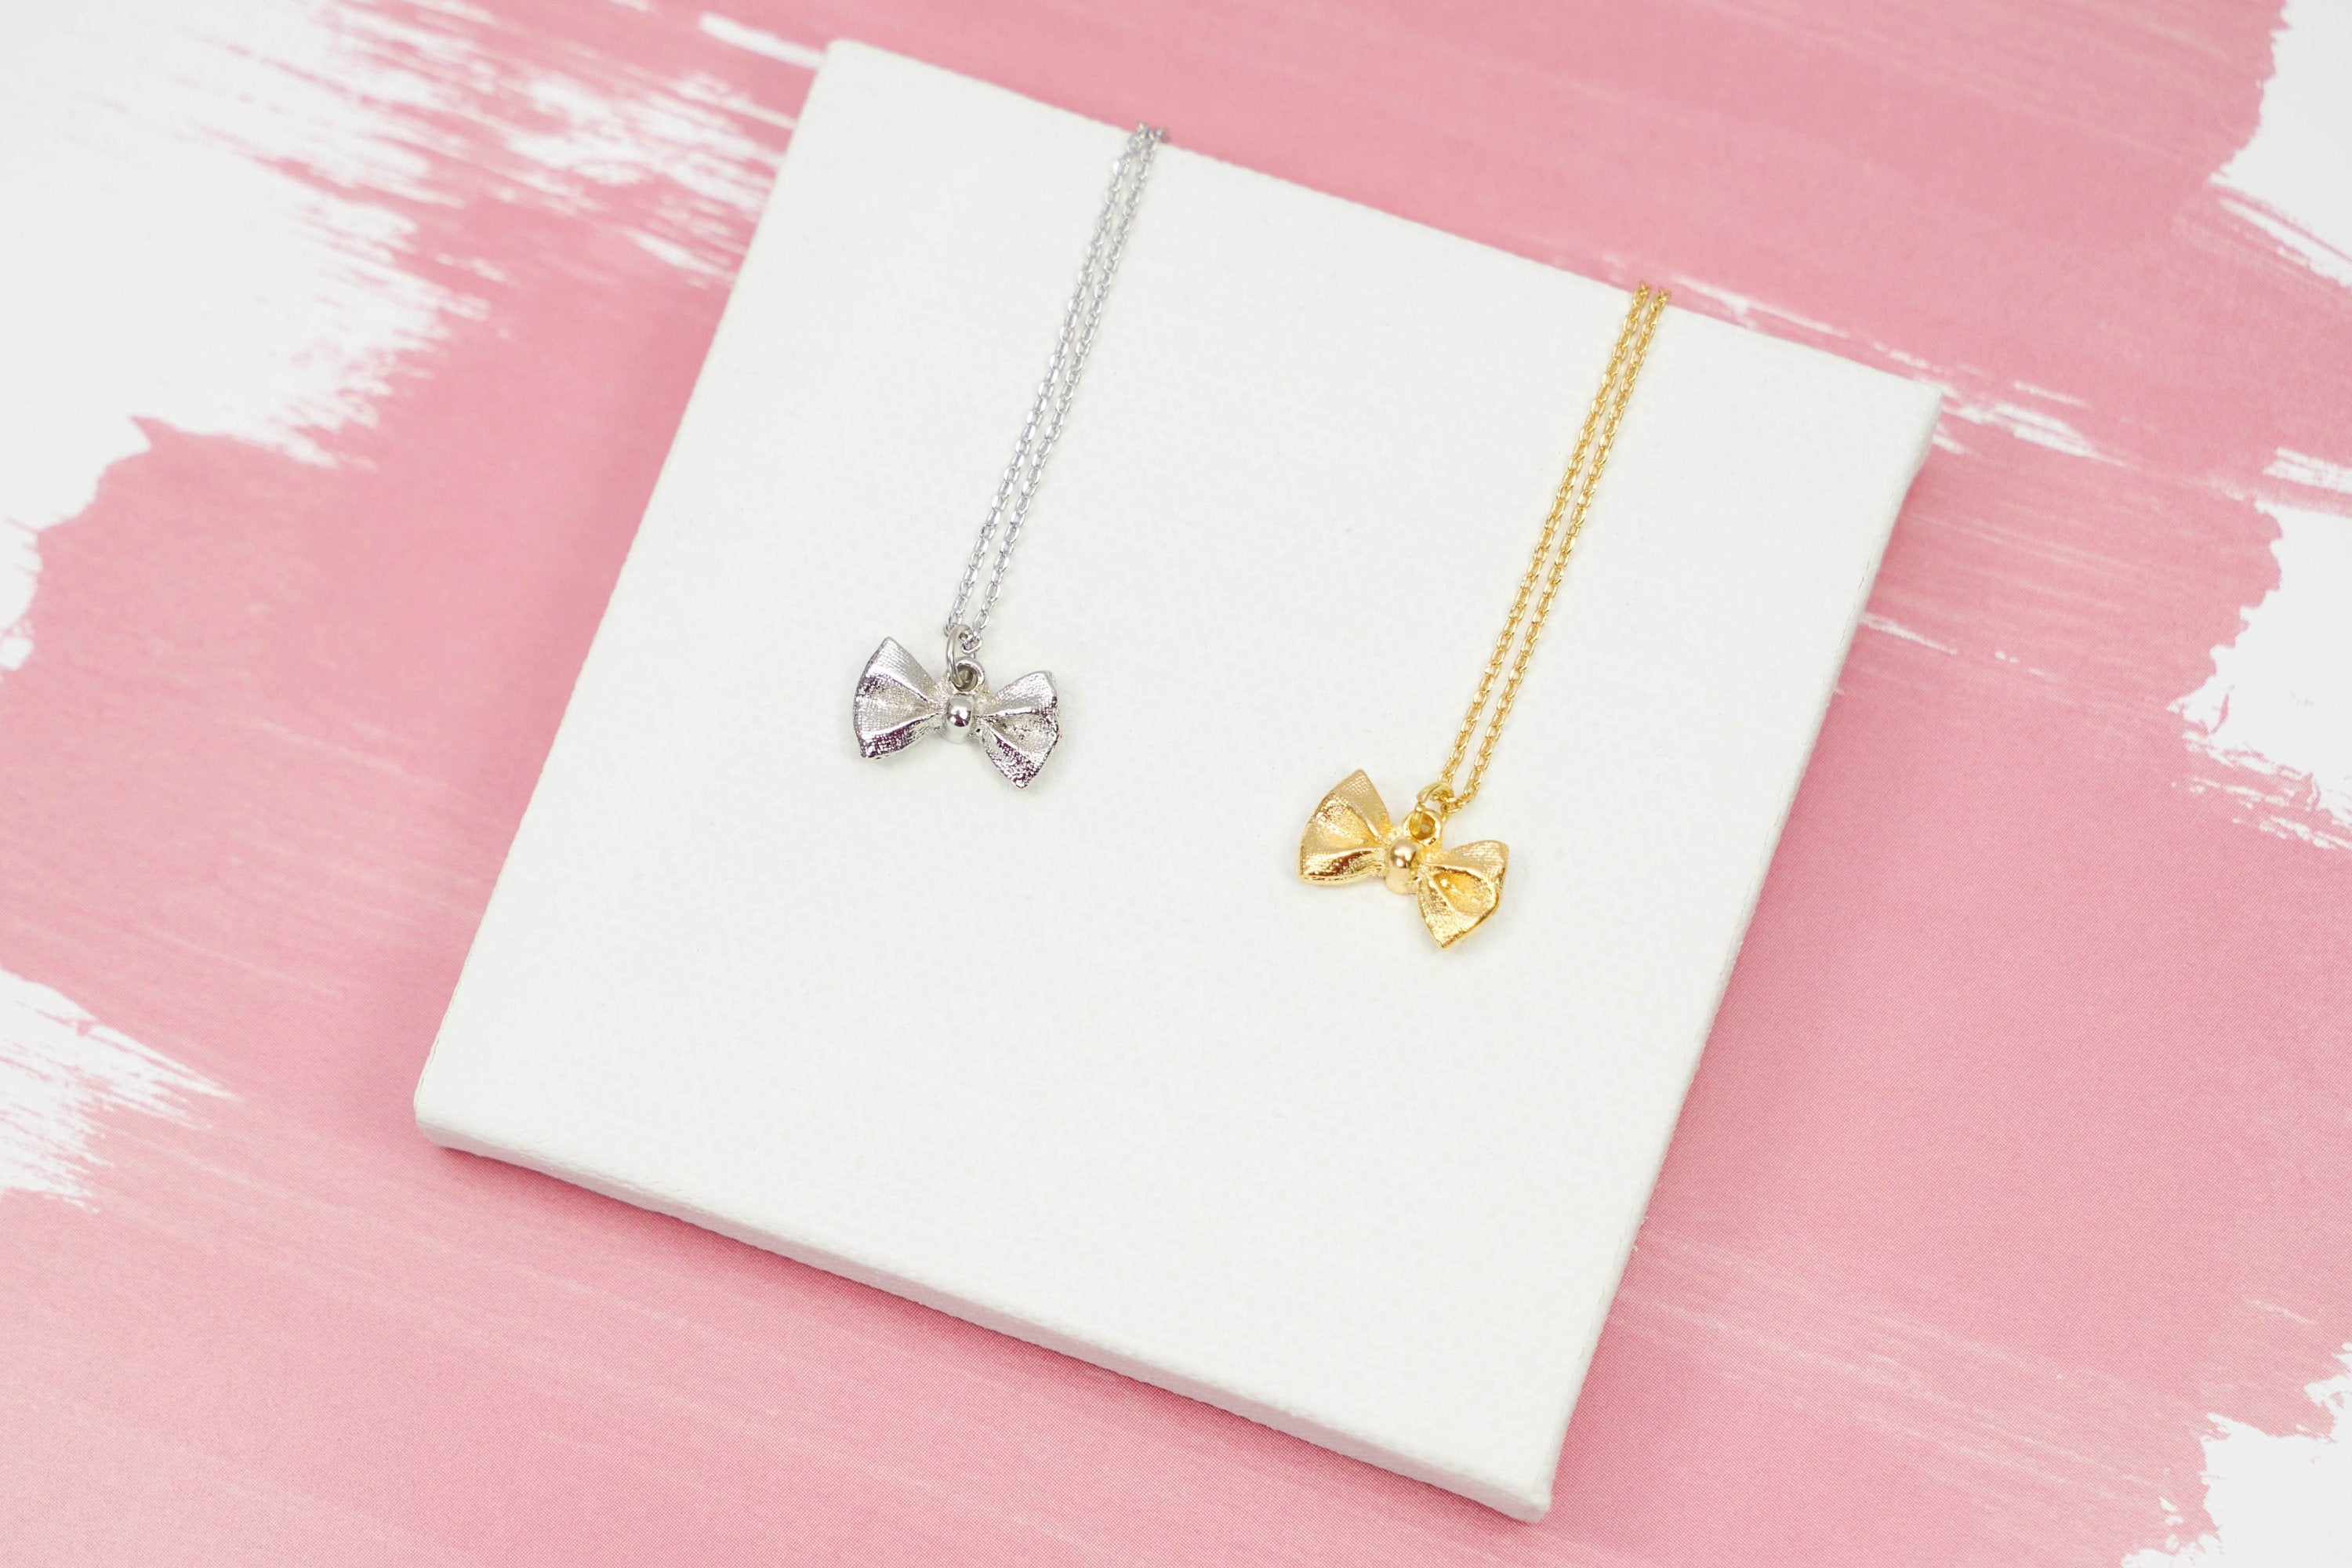 Sparkling Bow Necklace, Dainty Gold Ribbon, Great For Layering, Simple,  Minimalist Regarding 2020 Sparkling Bow Necklaces (Gallery 3 of 25)